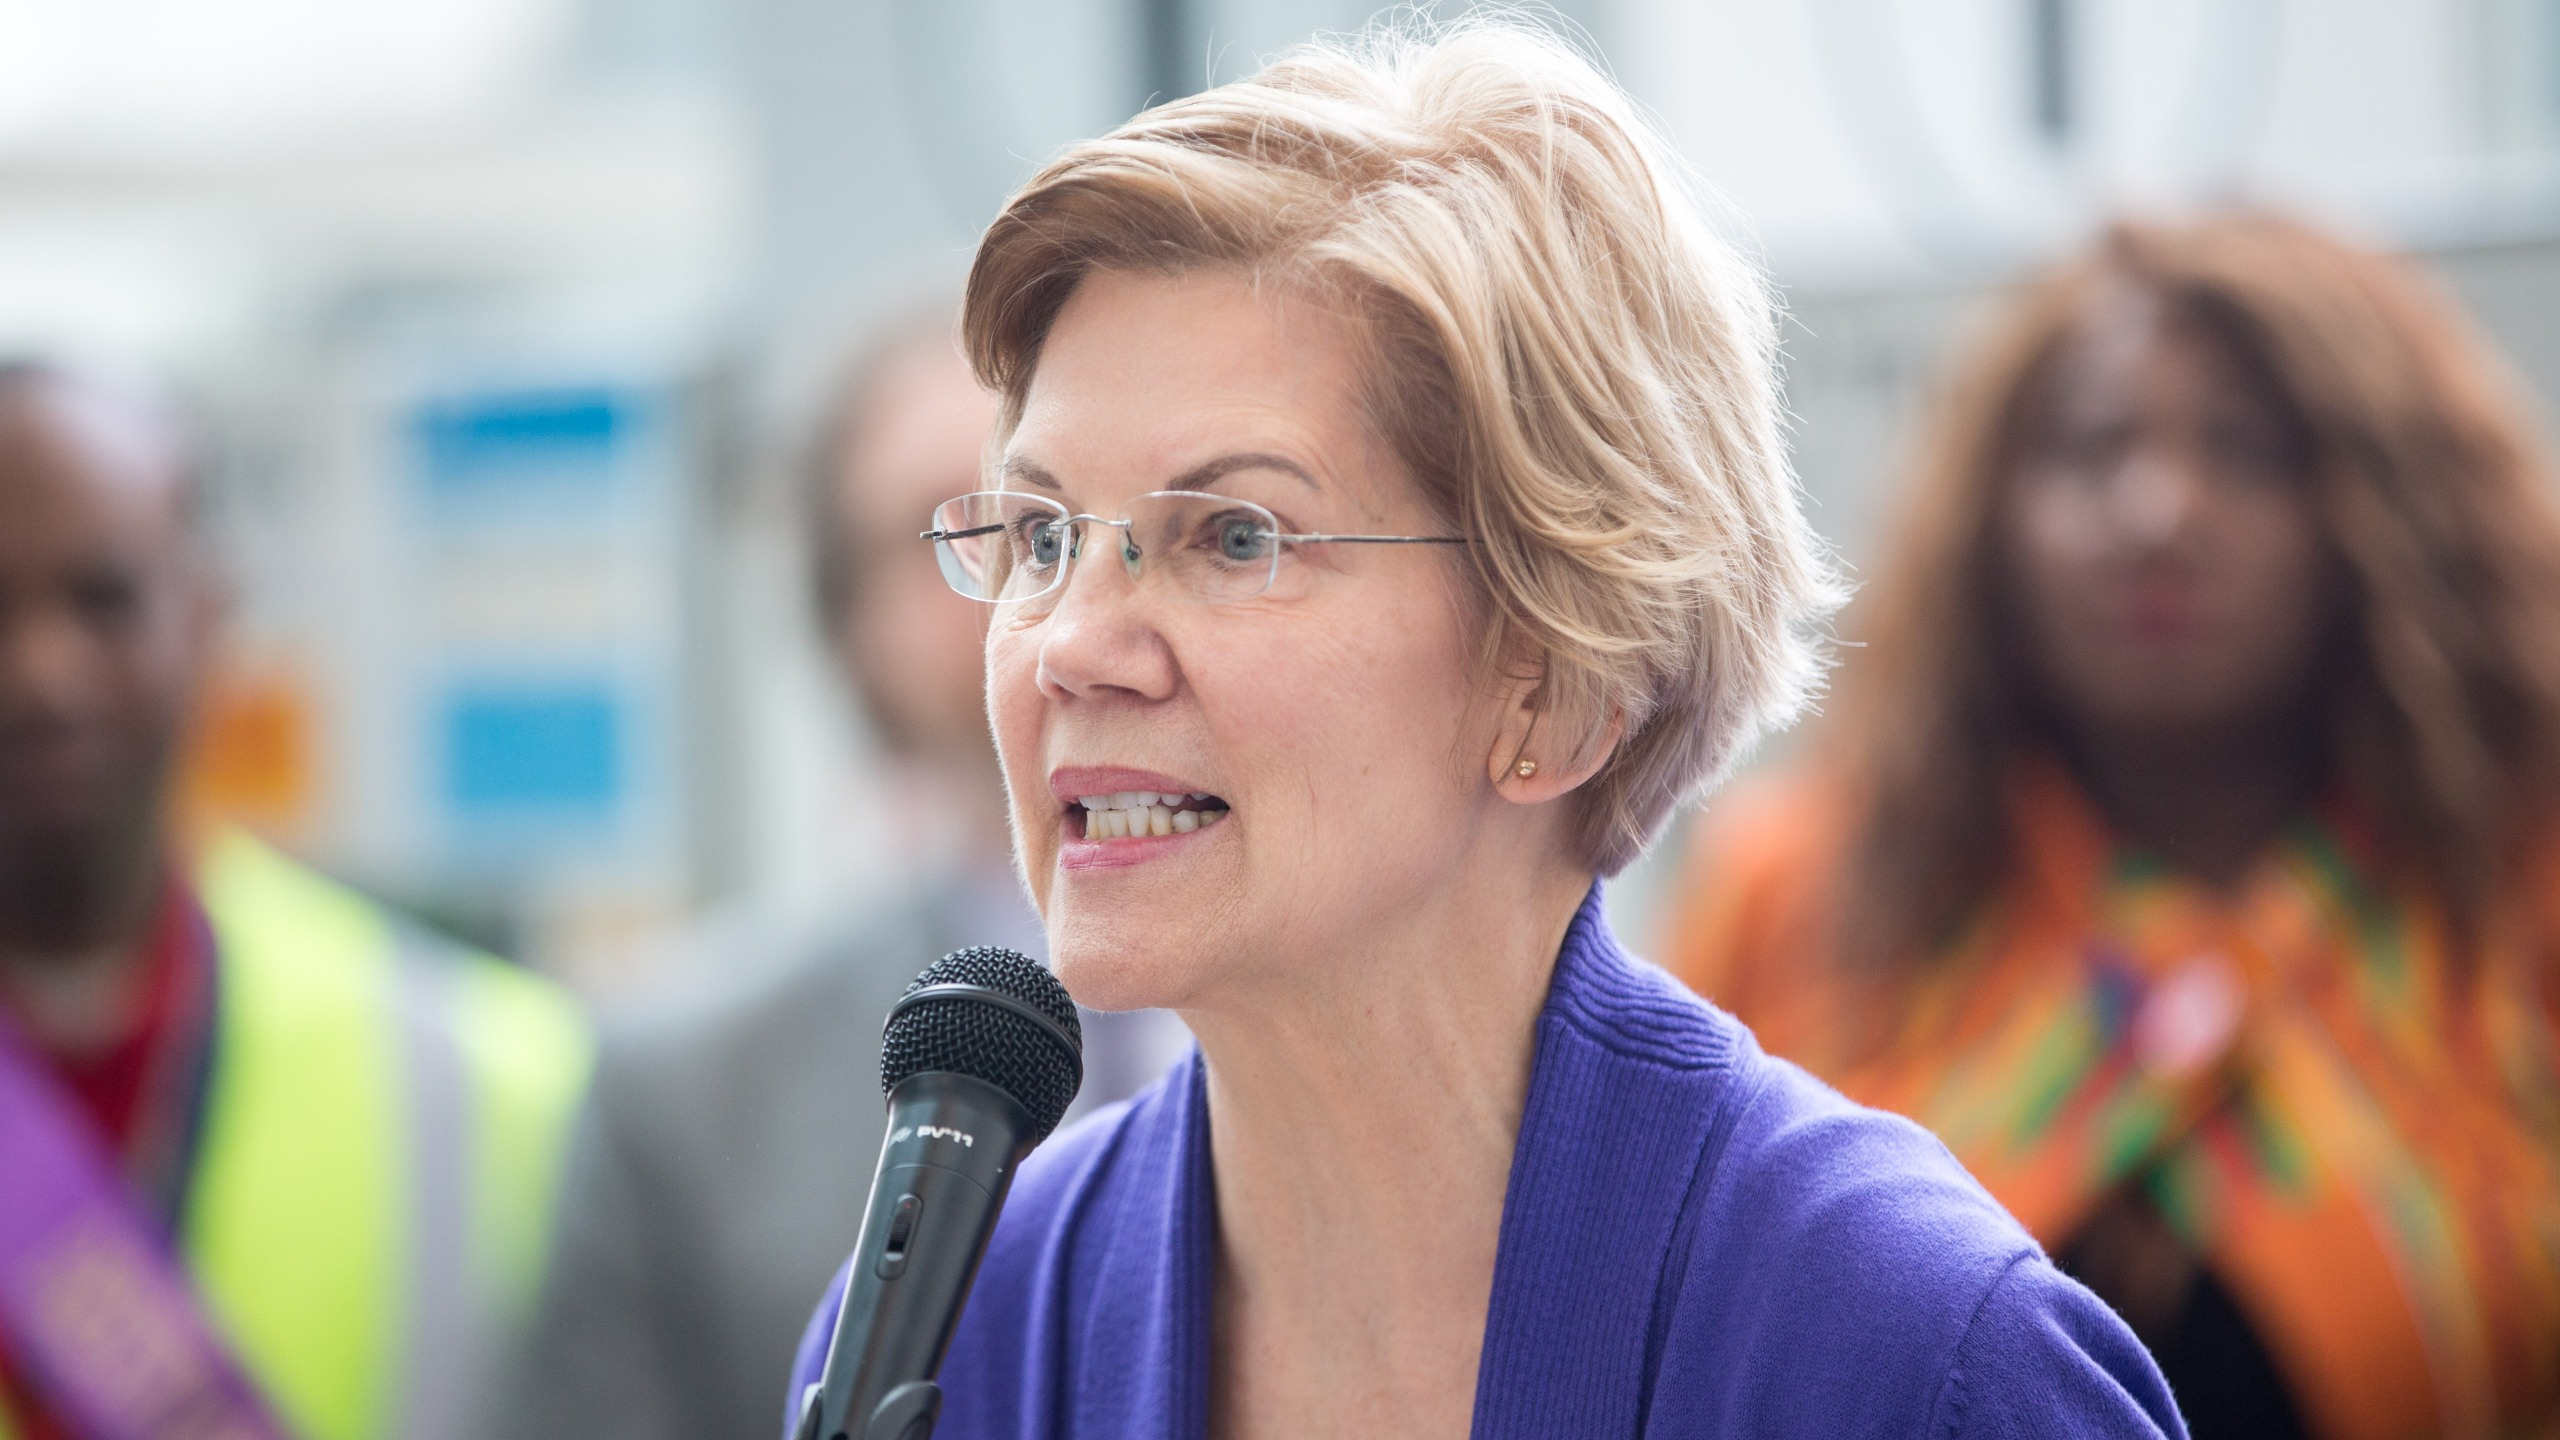 Sen. Elizabeth Warren (D-MA), speaks during a rally for airport workers affected by the government shutdown at Boston Logan International Airport on Jan. 21, 2019, in Boston, Mass. (Credit: Scott Eisen/Getty Images)